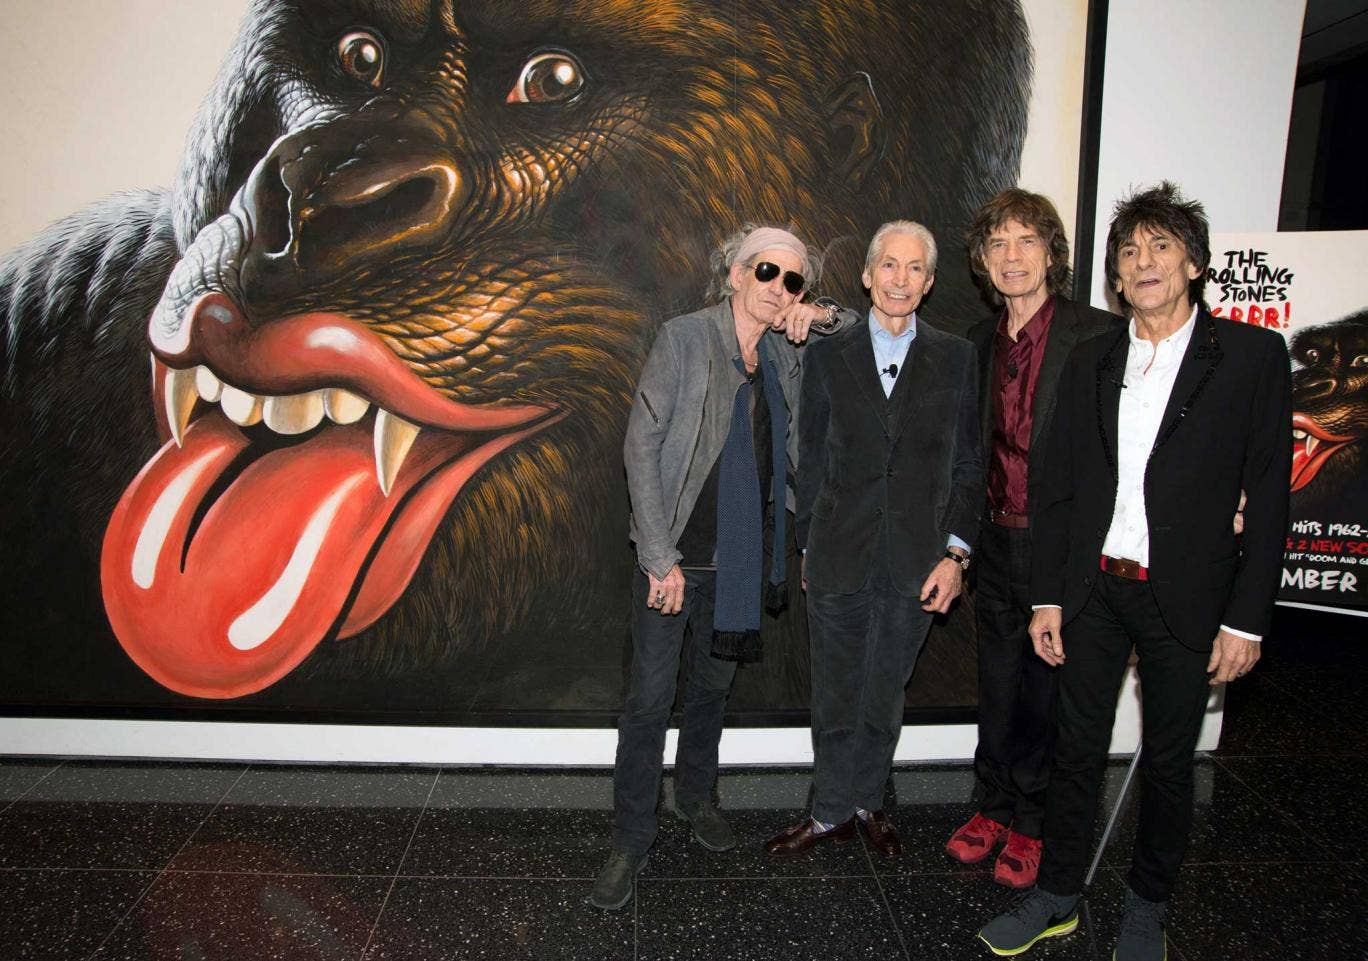 Free spirit: The Rolling Stones are celebrating their 50th anniversary